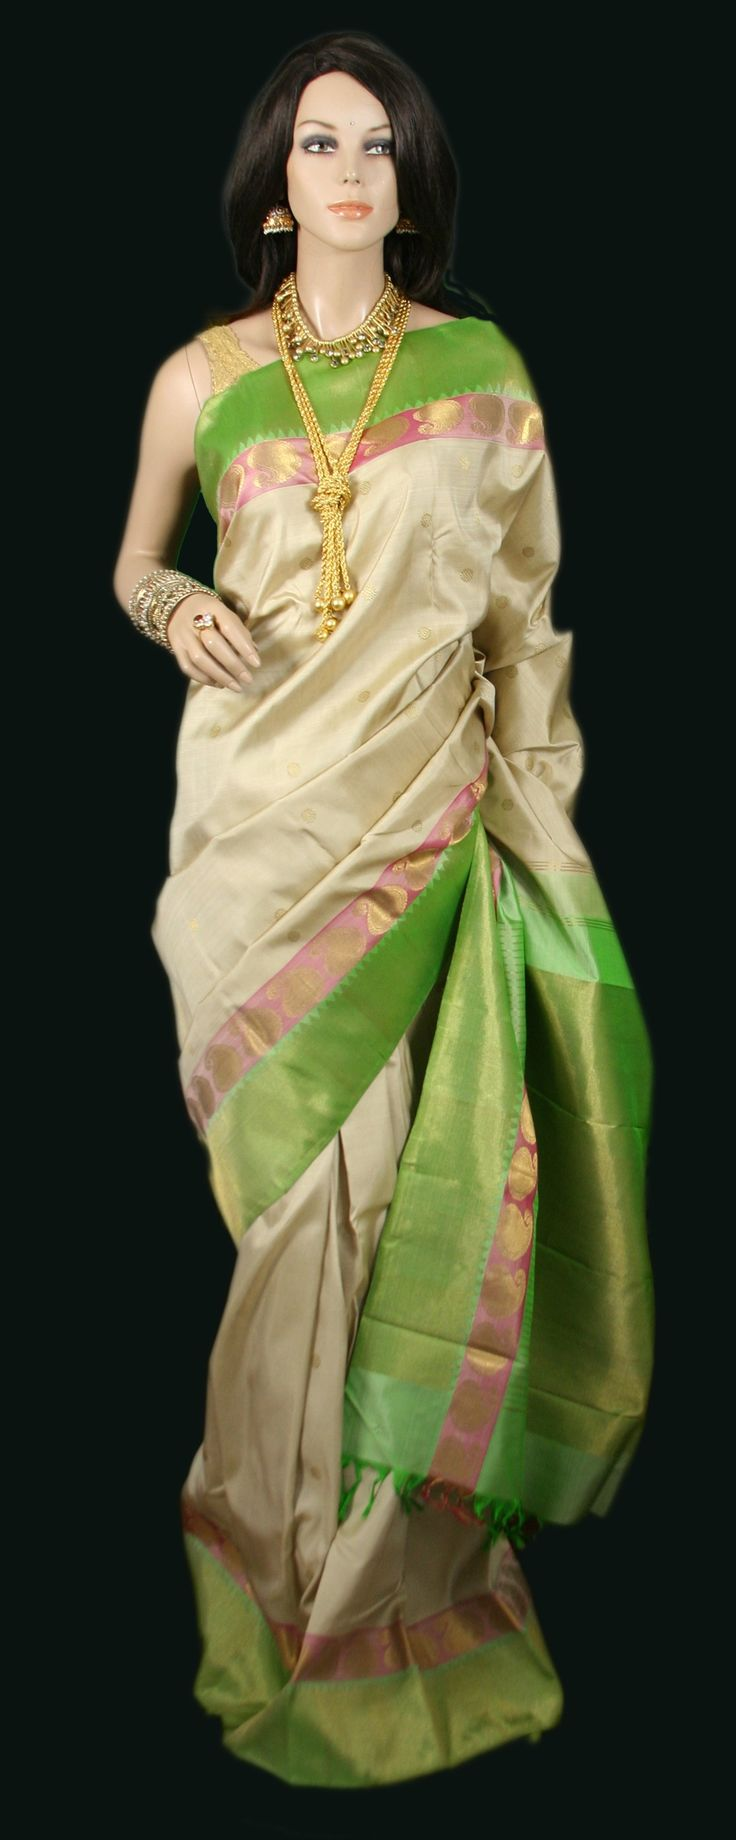 Beige Kanjeevaram Saree with parrot green and pale pink border